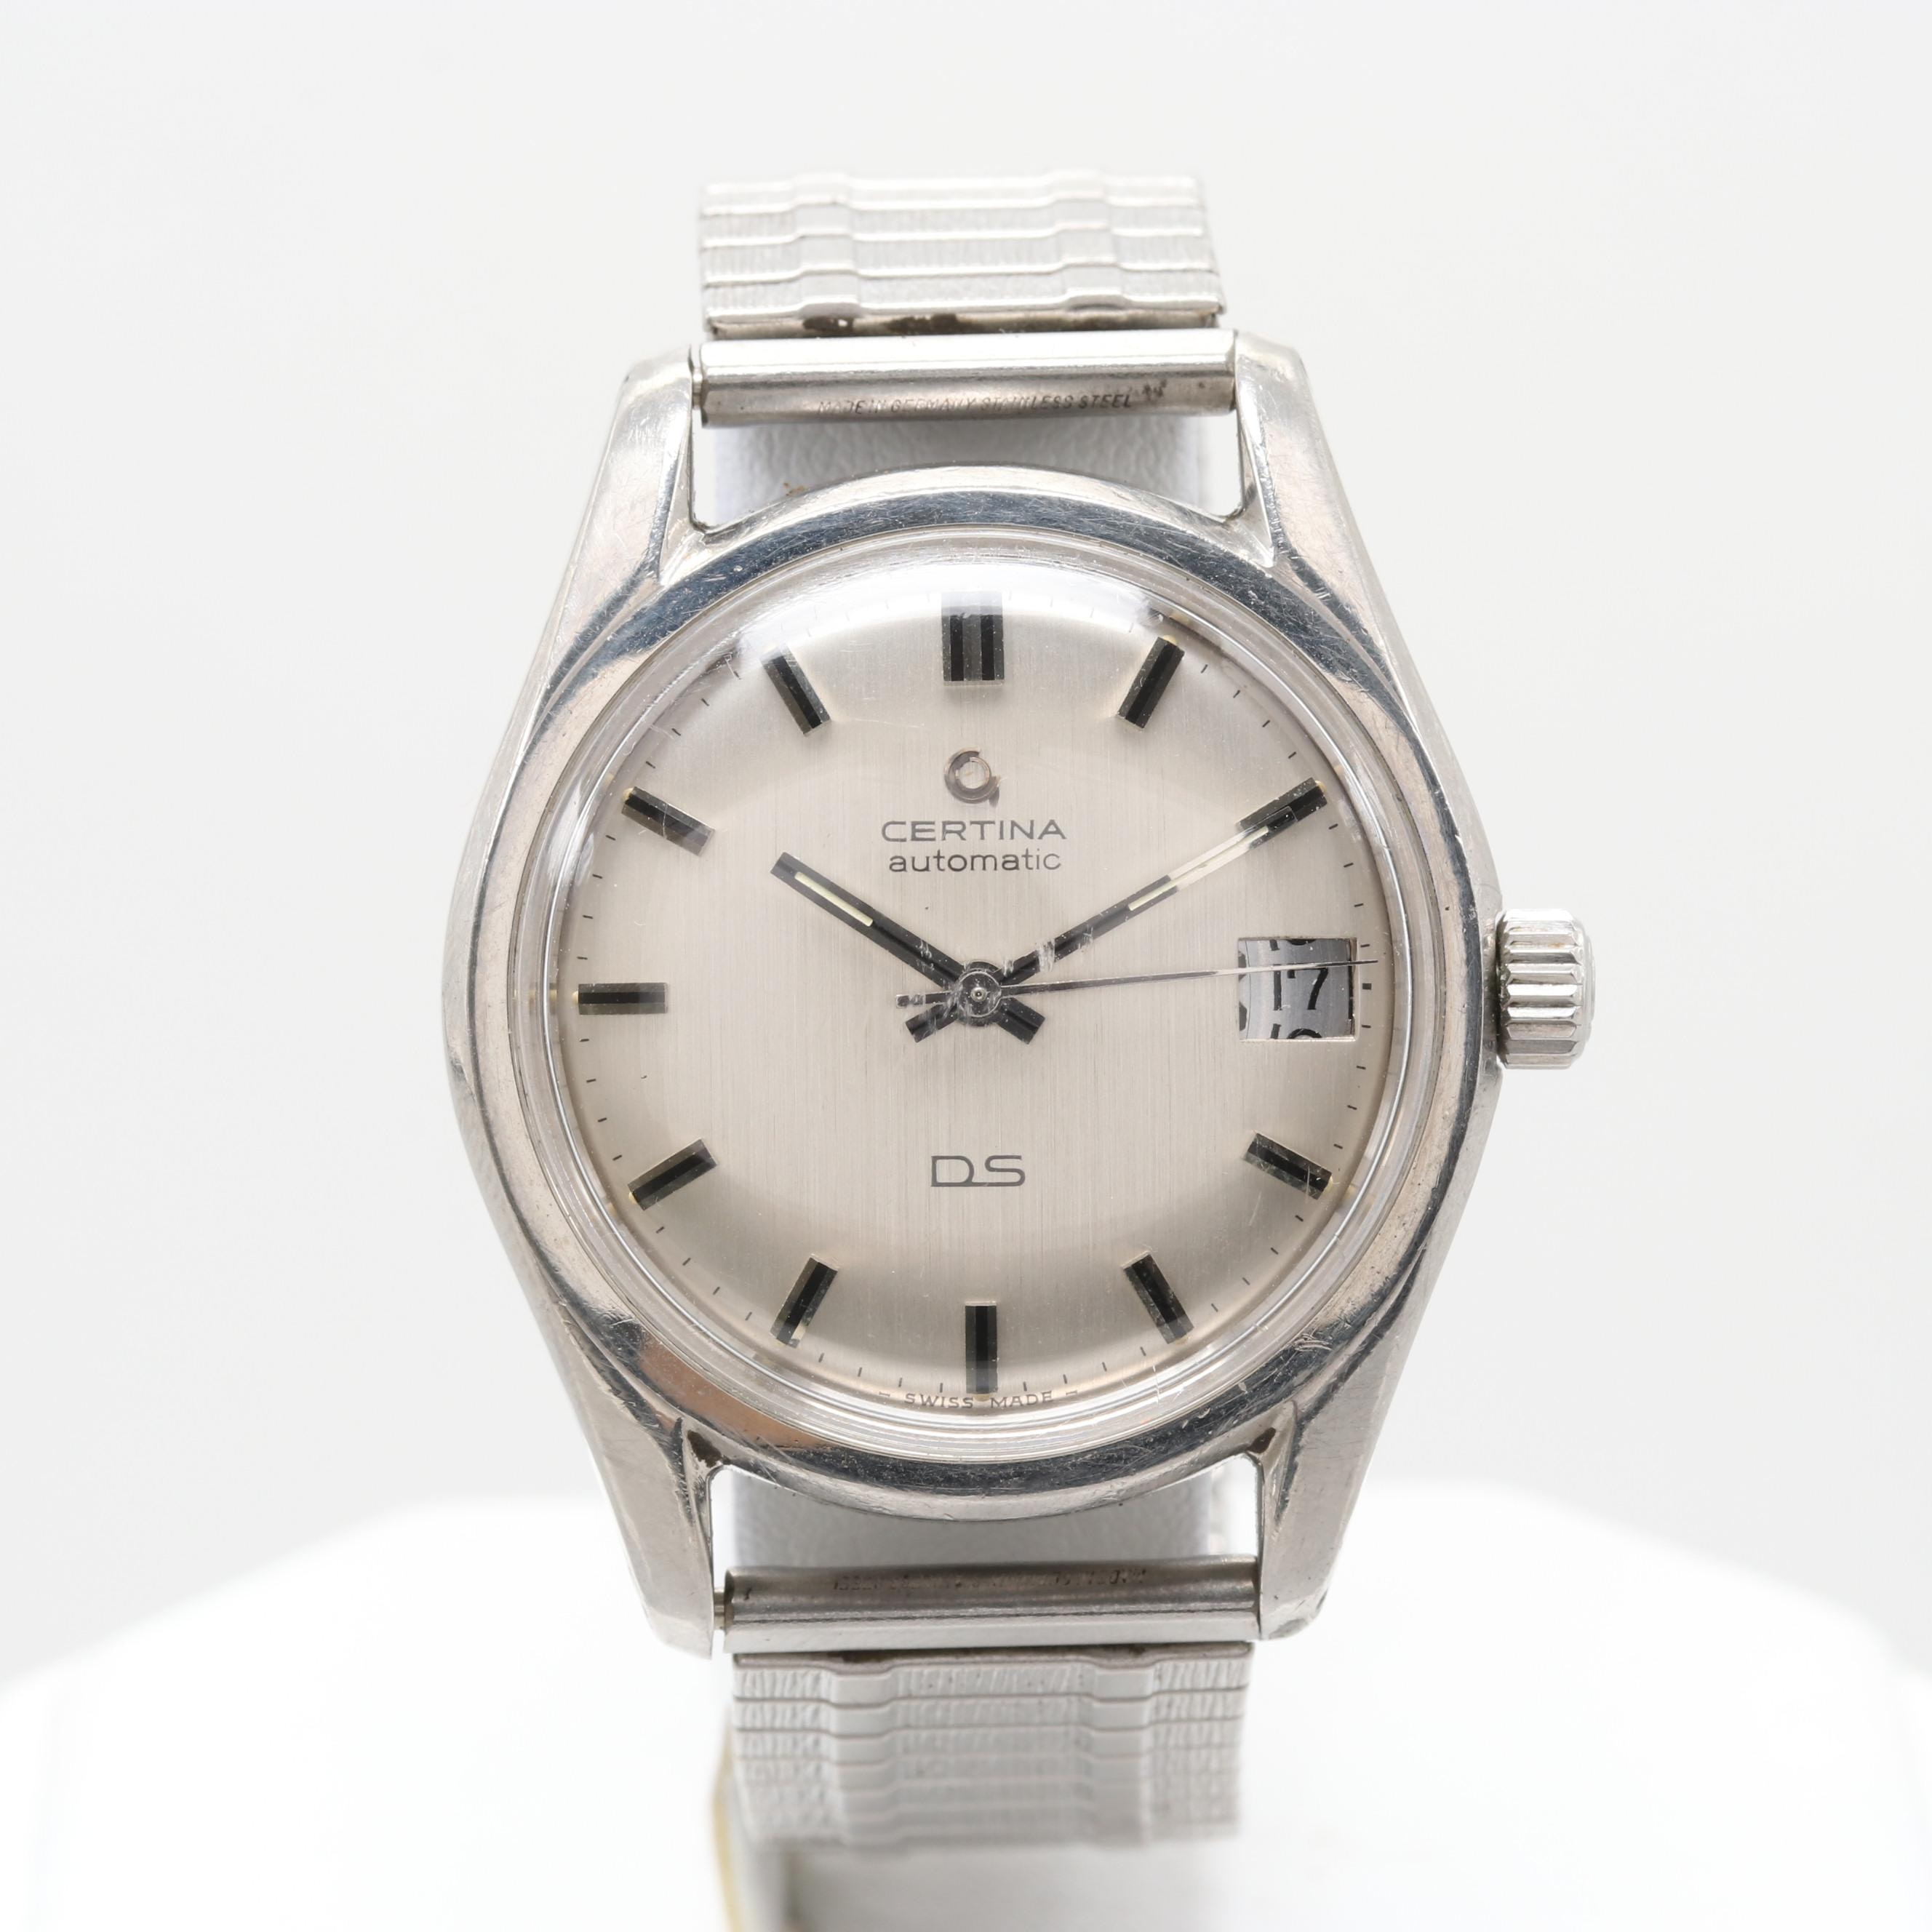 Certina DS Stainless Steel Automatic Wristwatch With Date Window